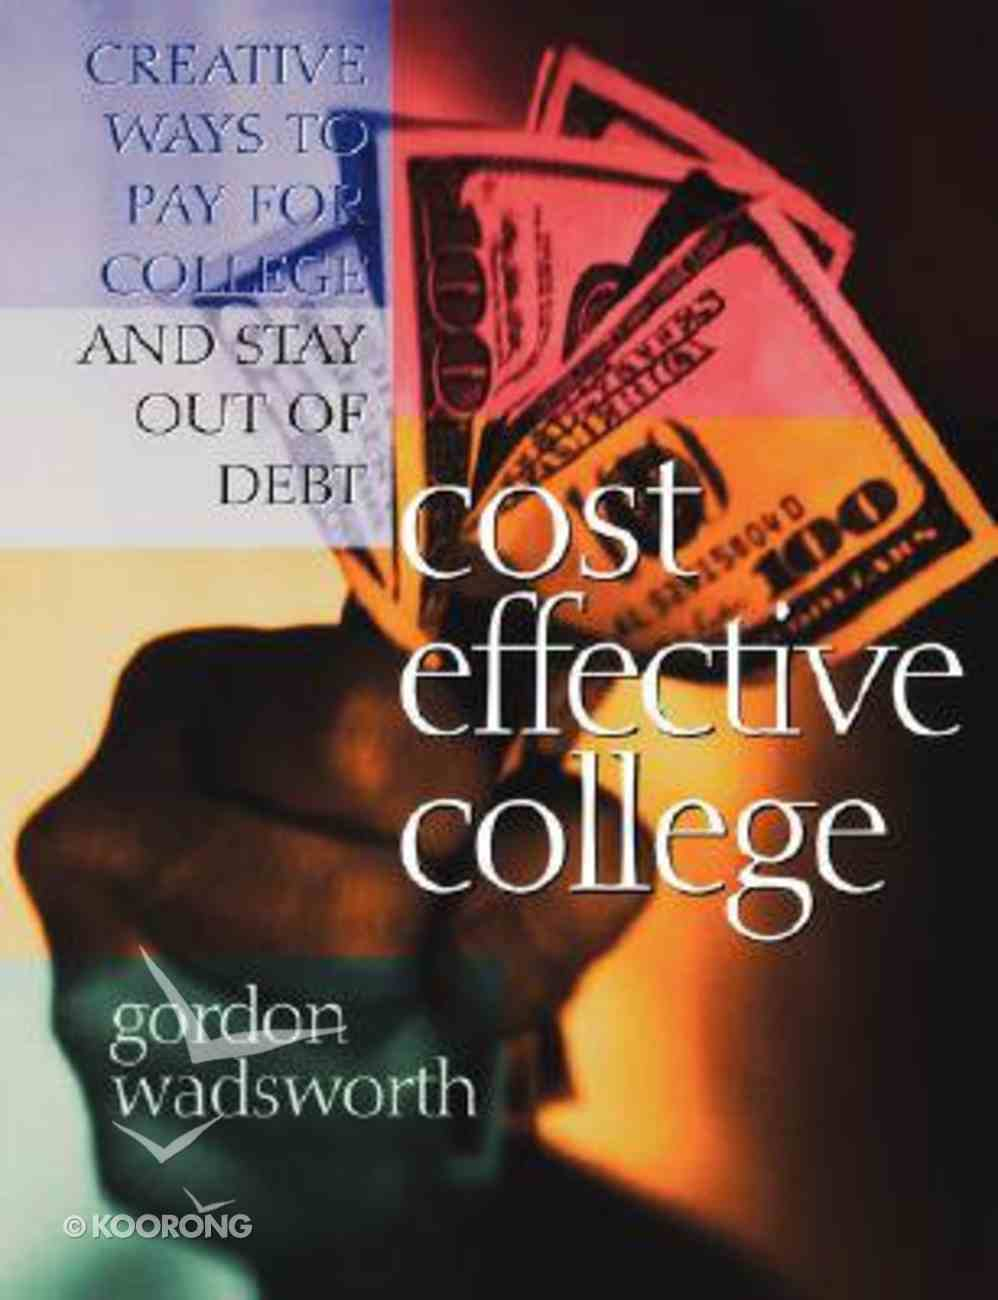 Cost Effective College Paperback